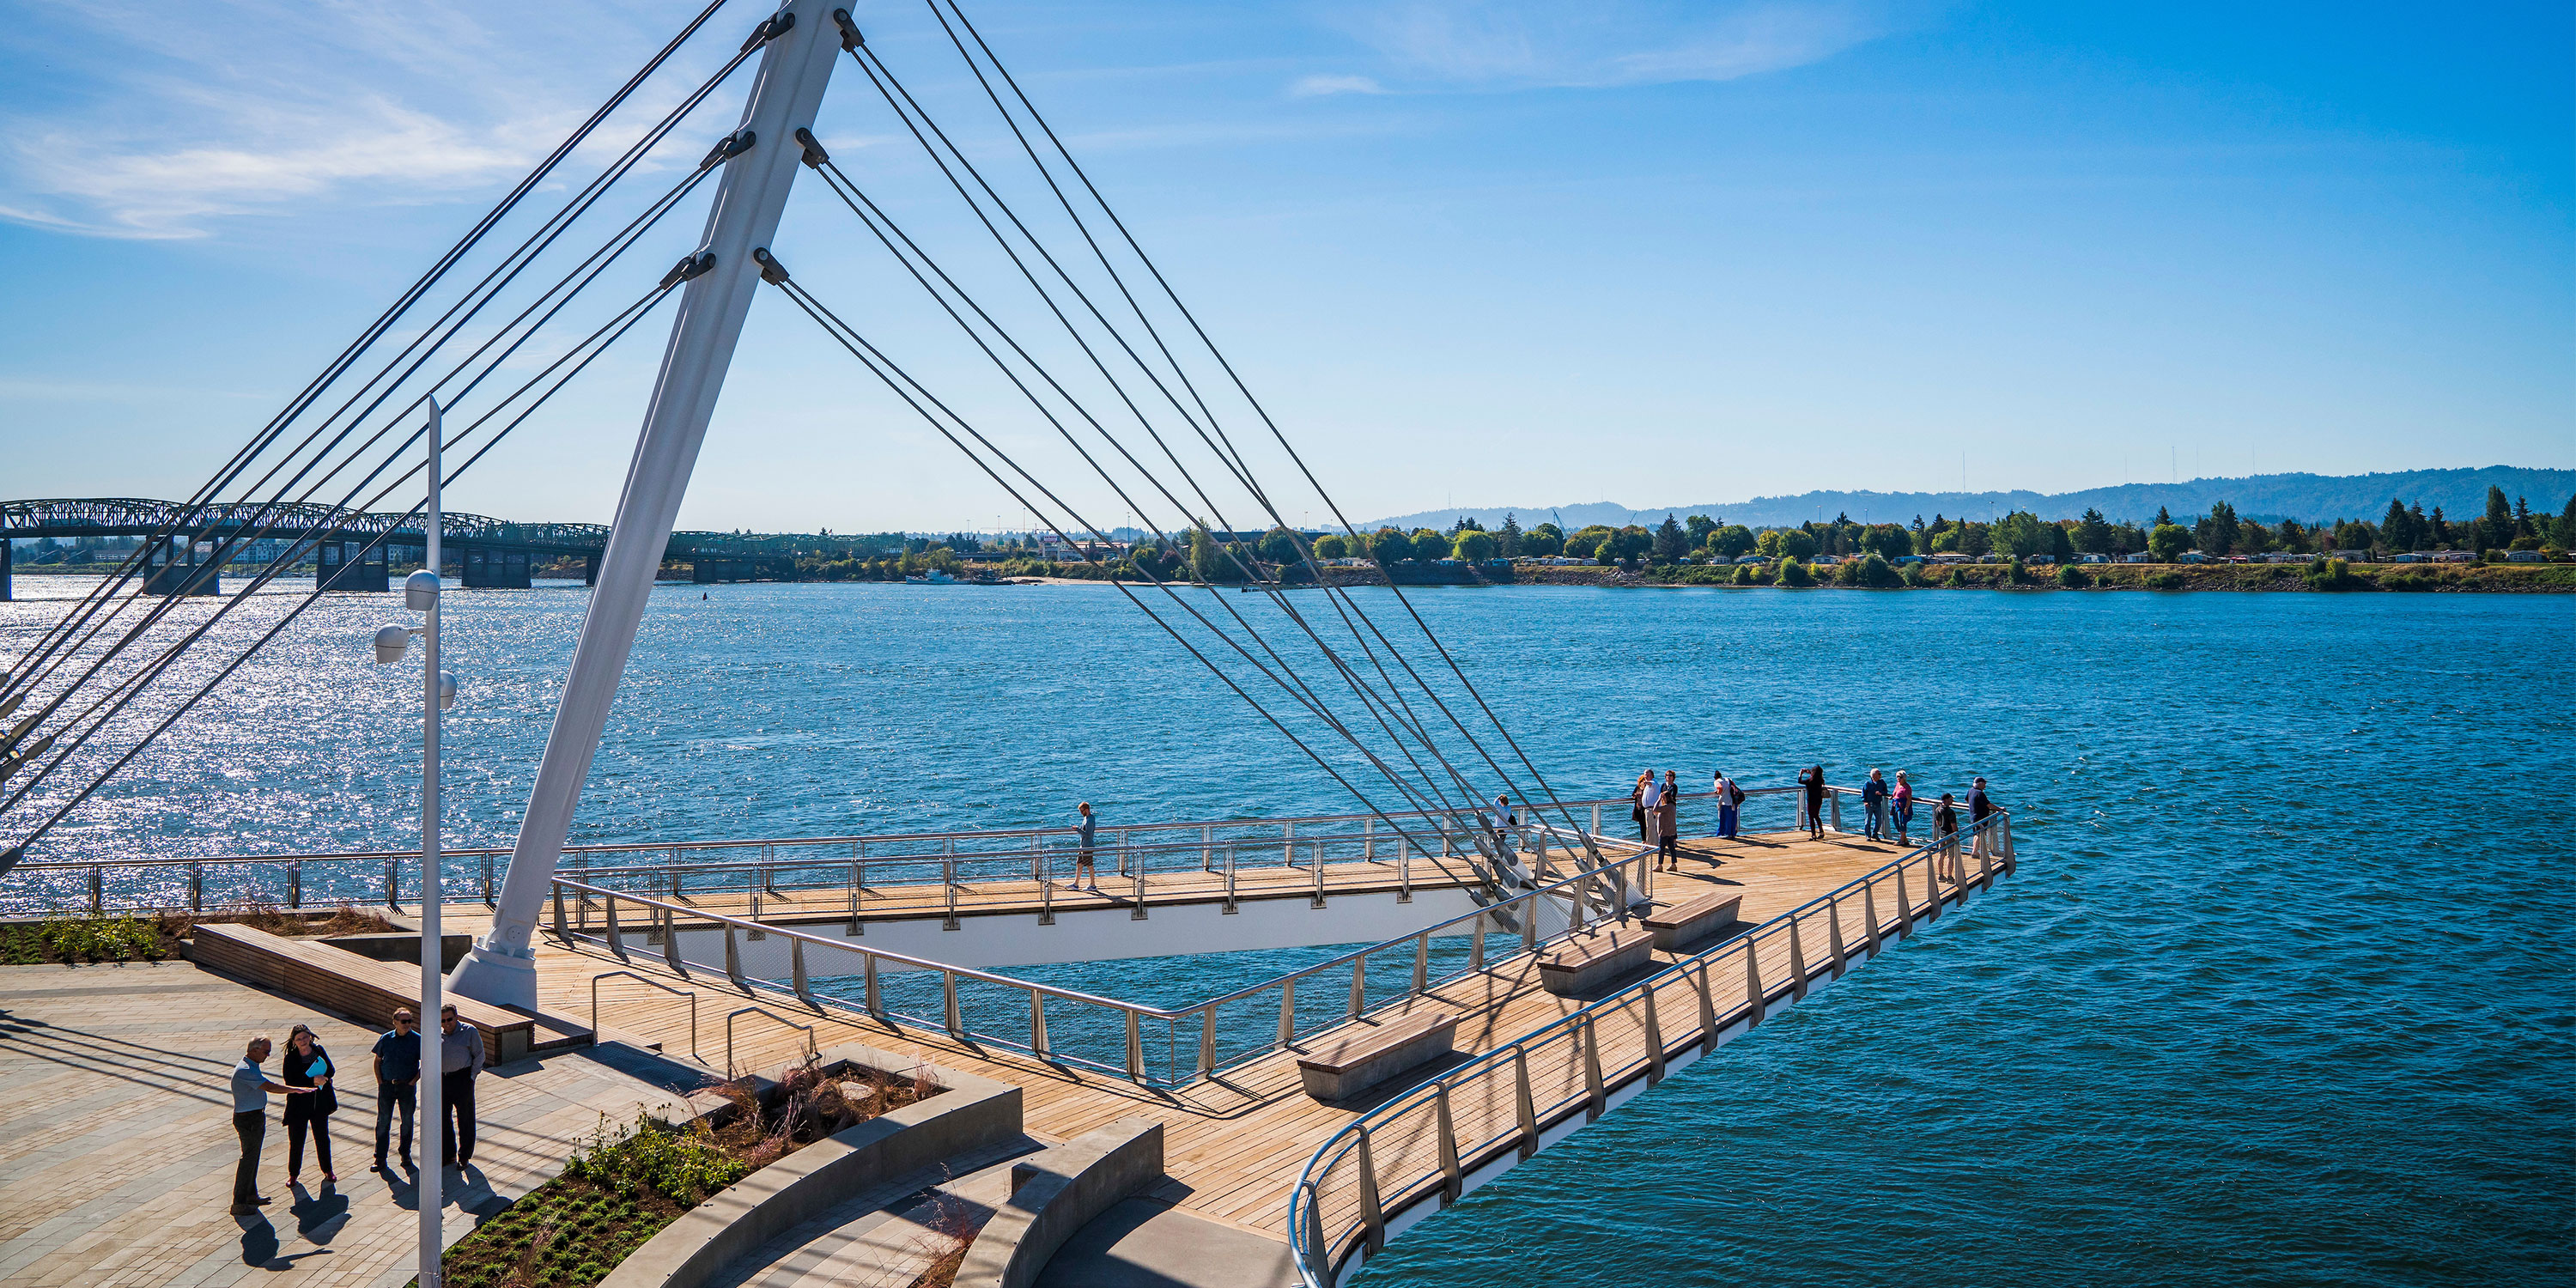 grant-street-pier-columbia-river-vancouver-wa-things-to-do